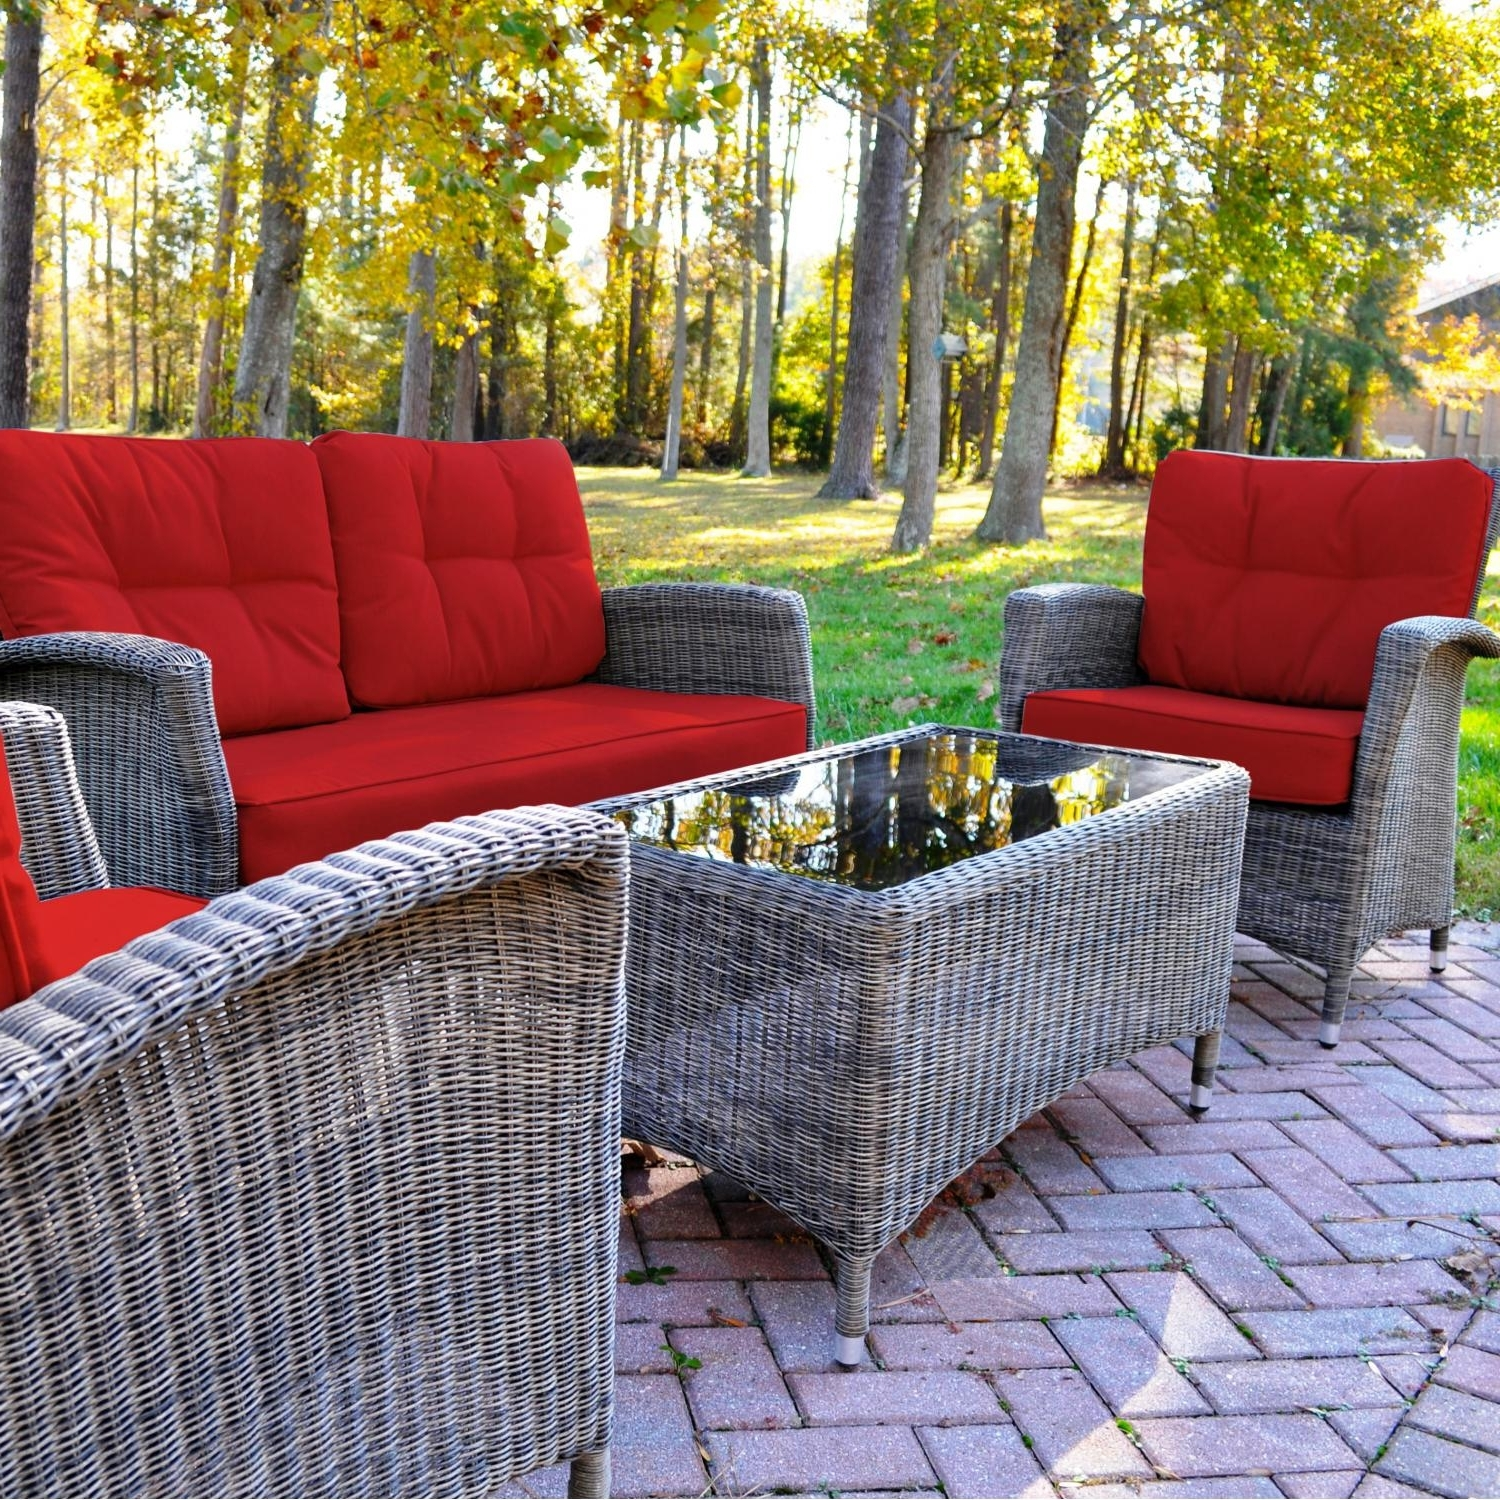 Red Patio Conversation Sets Regarding Most Current Kettler Lakena 4 Piece Wicker Patio Conversation Set With Jockey Red (View 18 of 20)